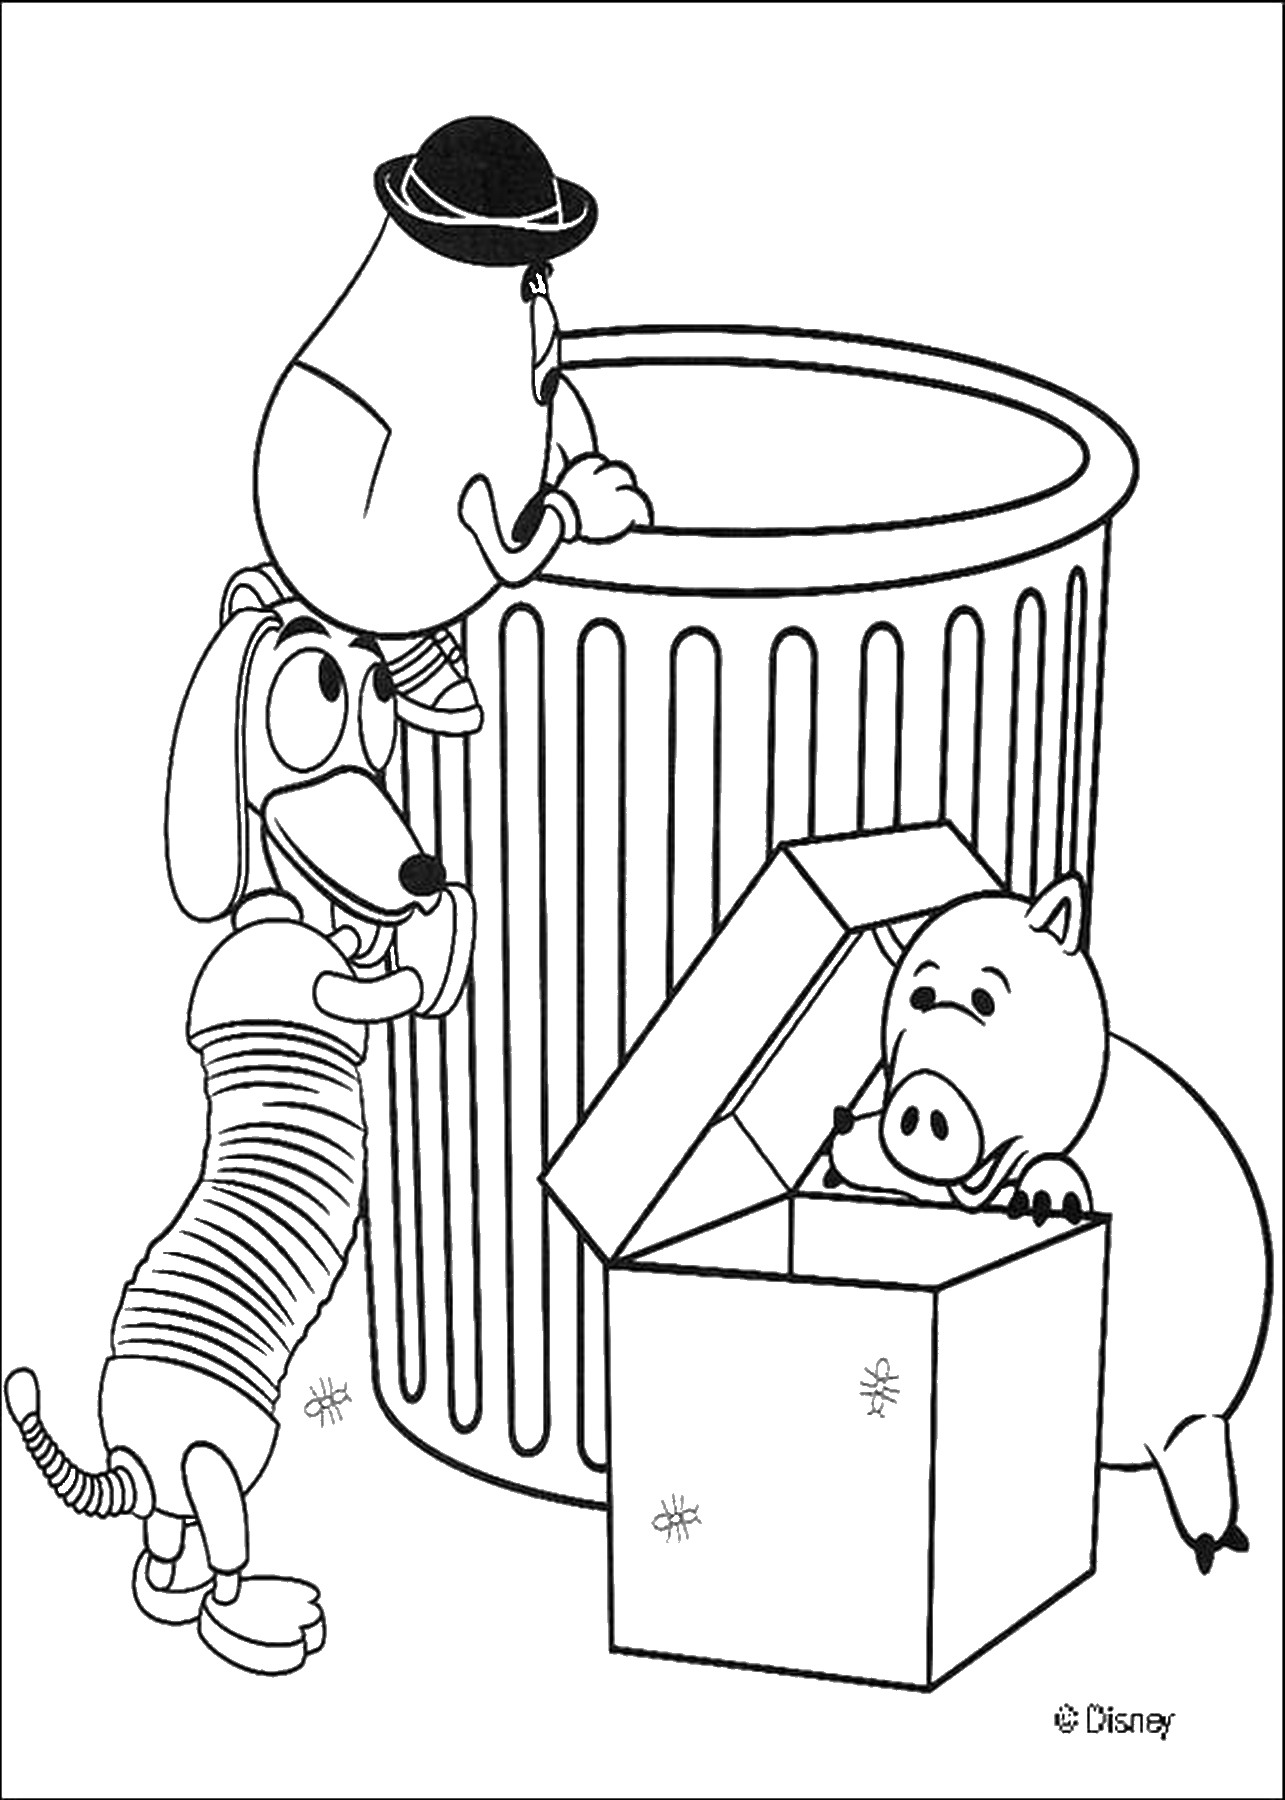 toy story coloring pages rex cool toy story 4 coloring pages toy story 4 kids pages story coloring toy